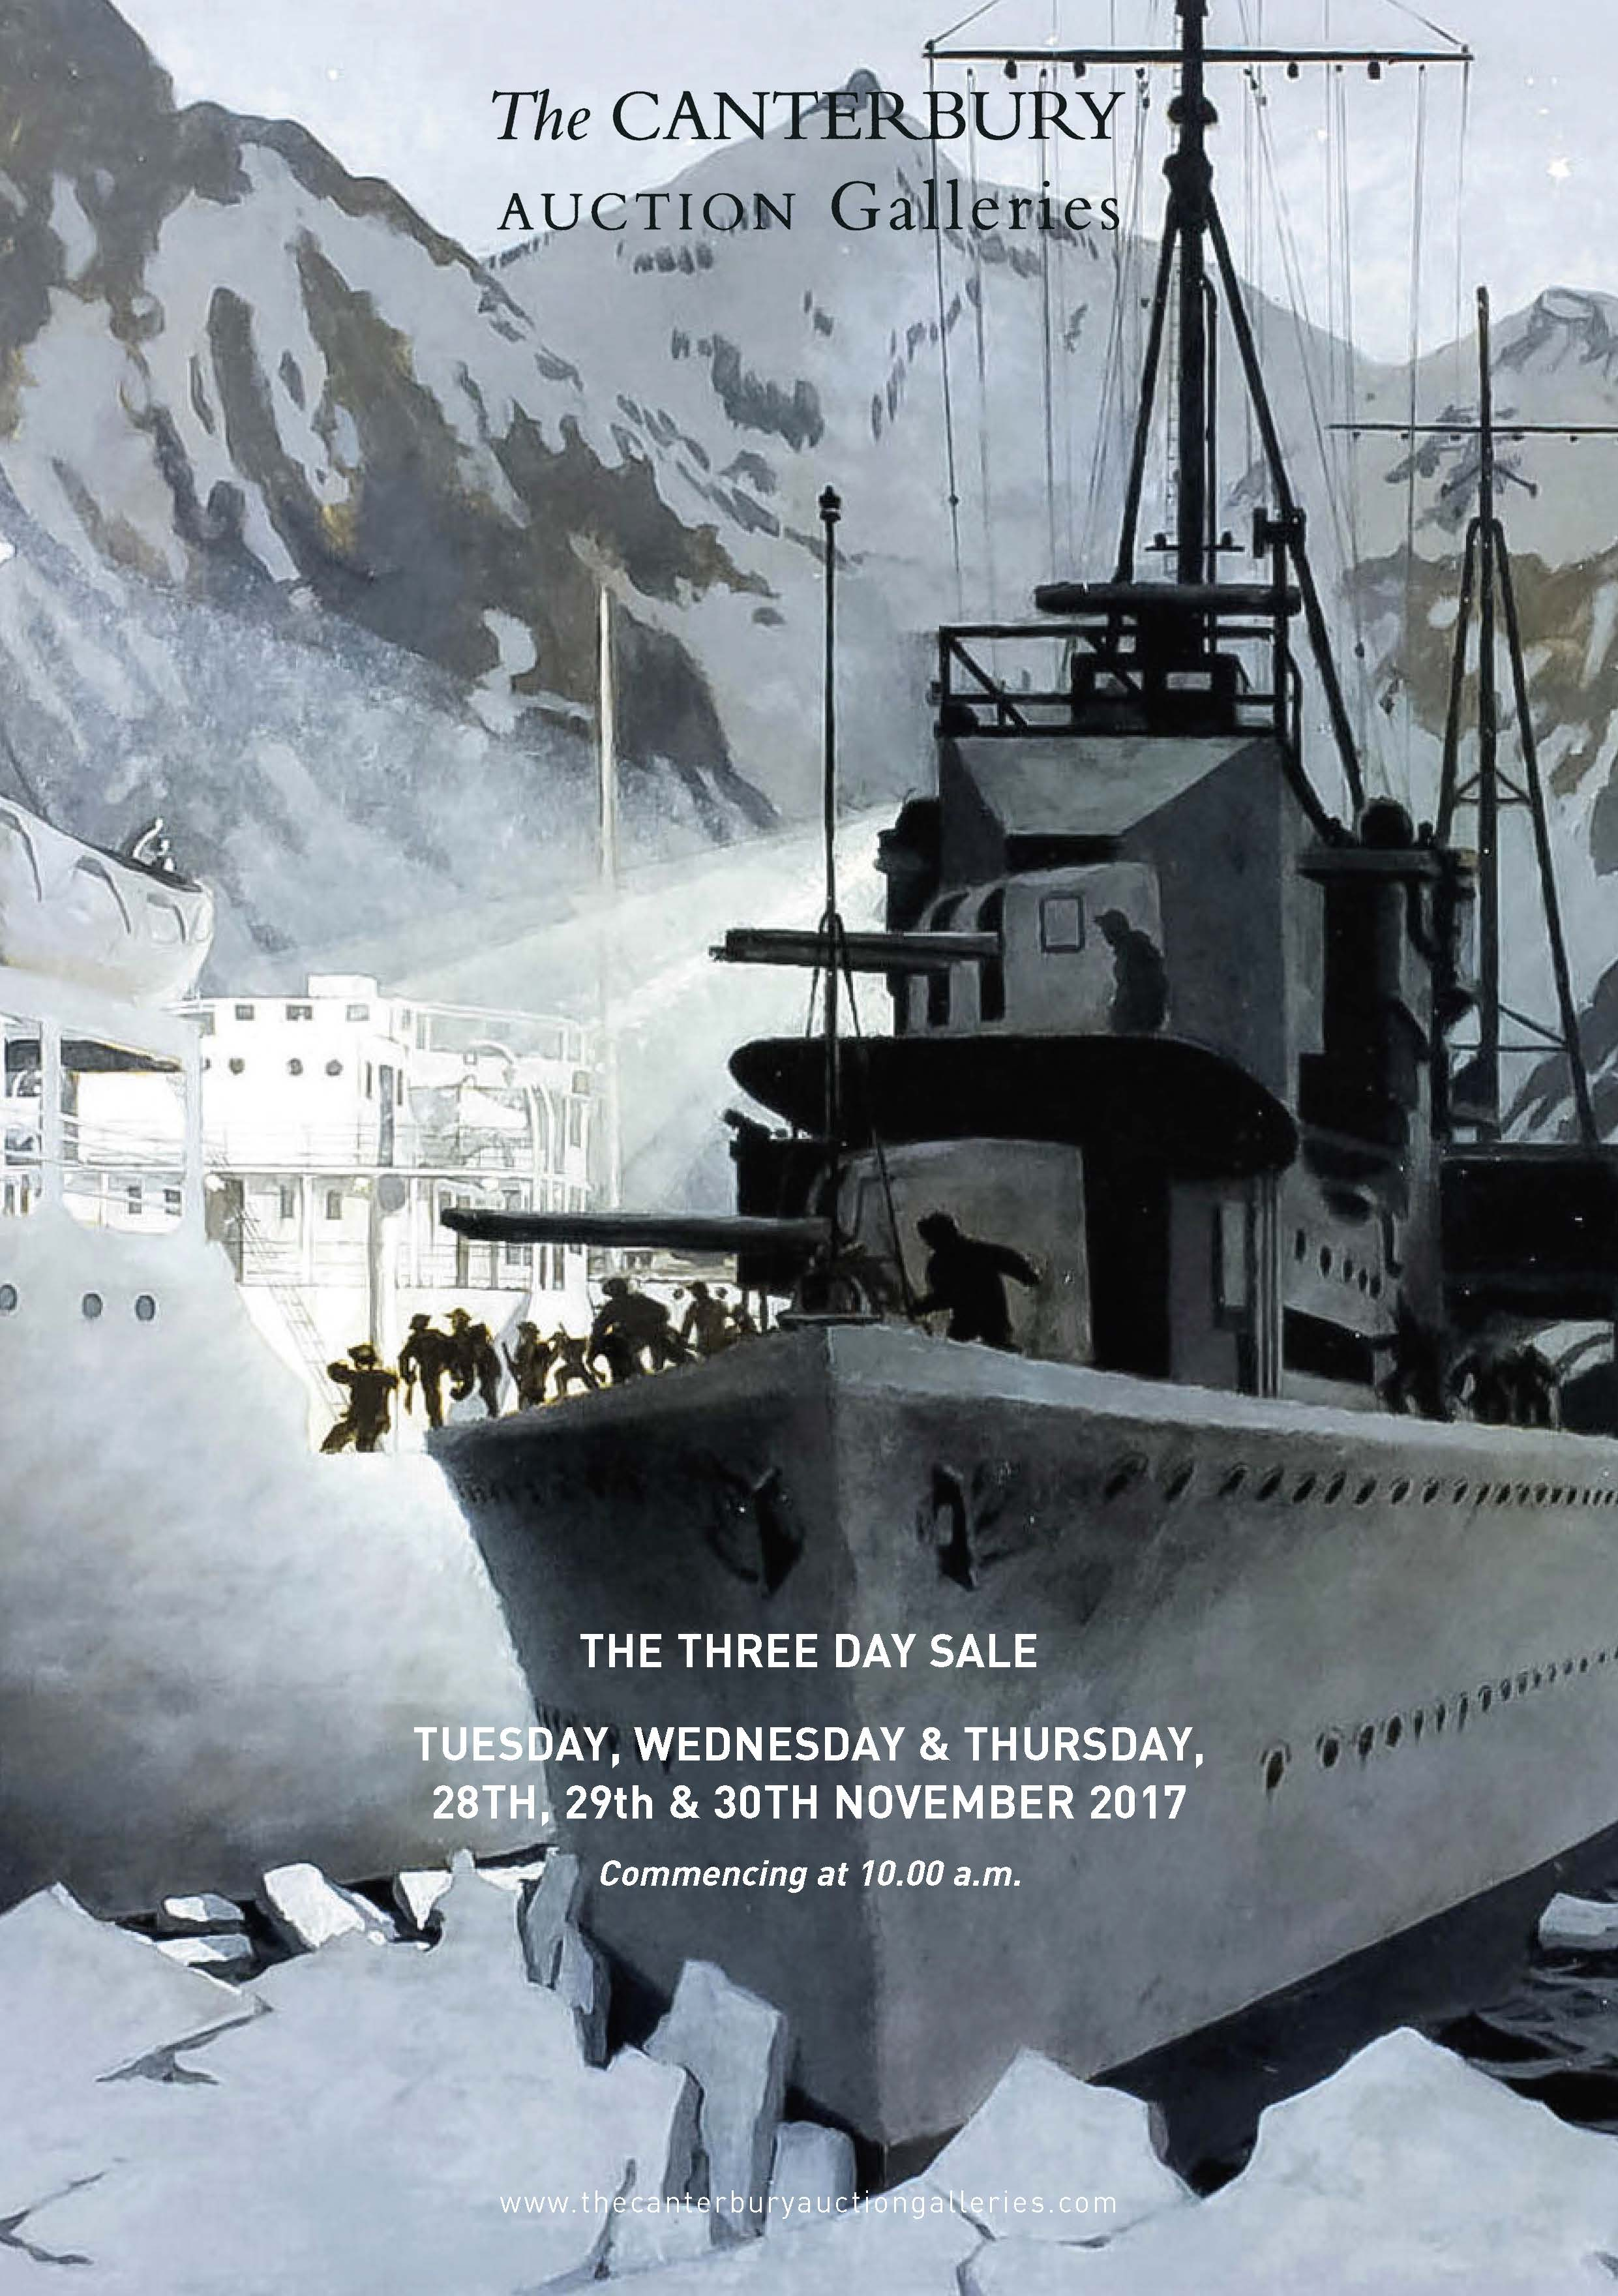 Three Day Christmas Sale of Fine Art and Antiques